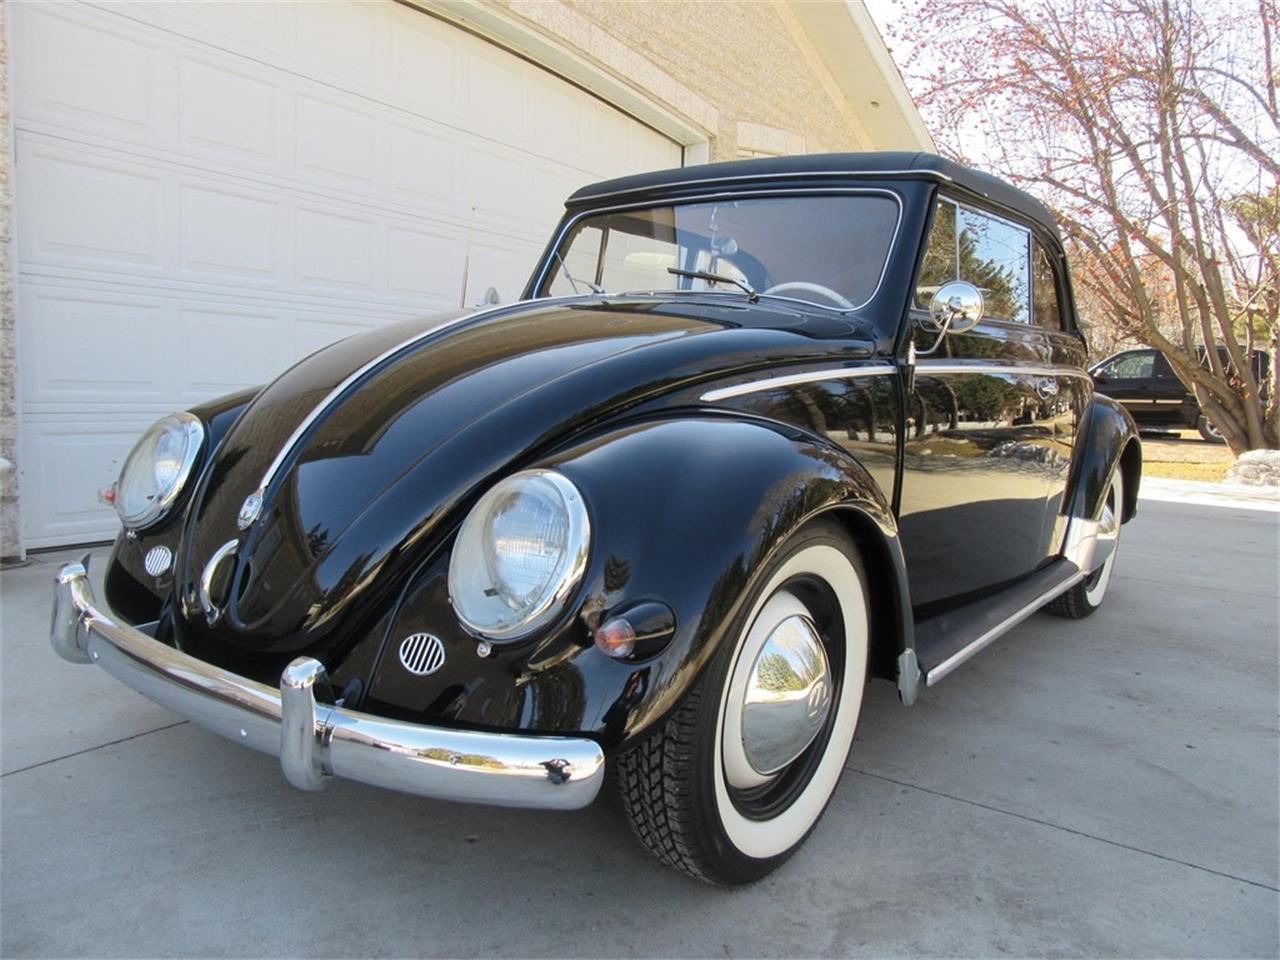 Large Picture of Classic '57 Volkswagen Beetle Auction Vehicle - PXFM